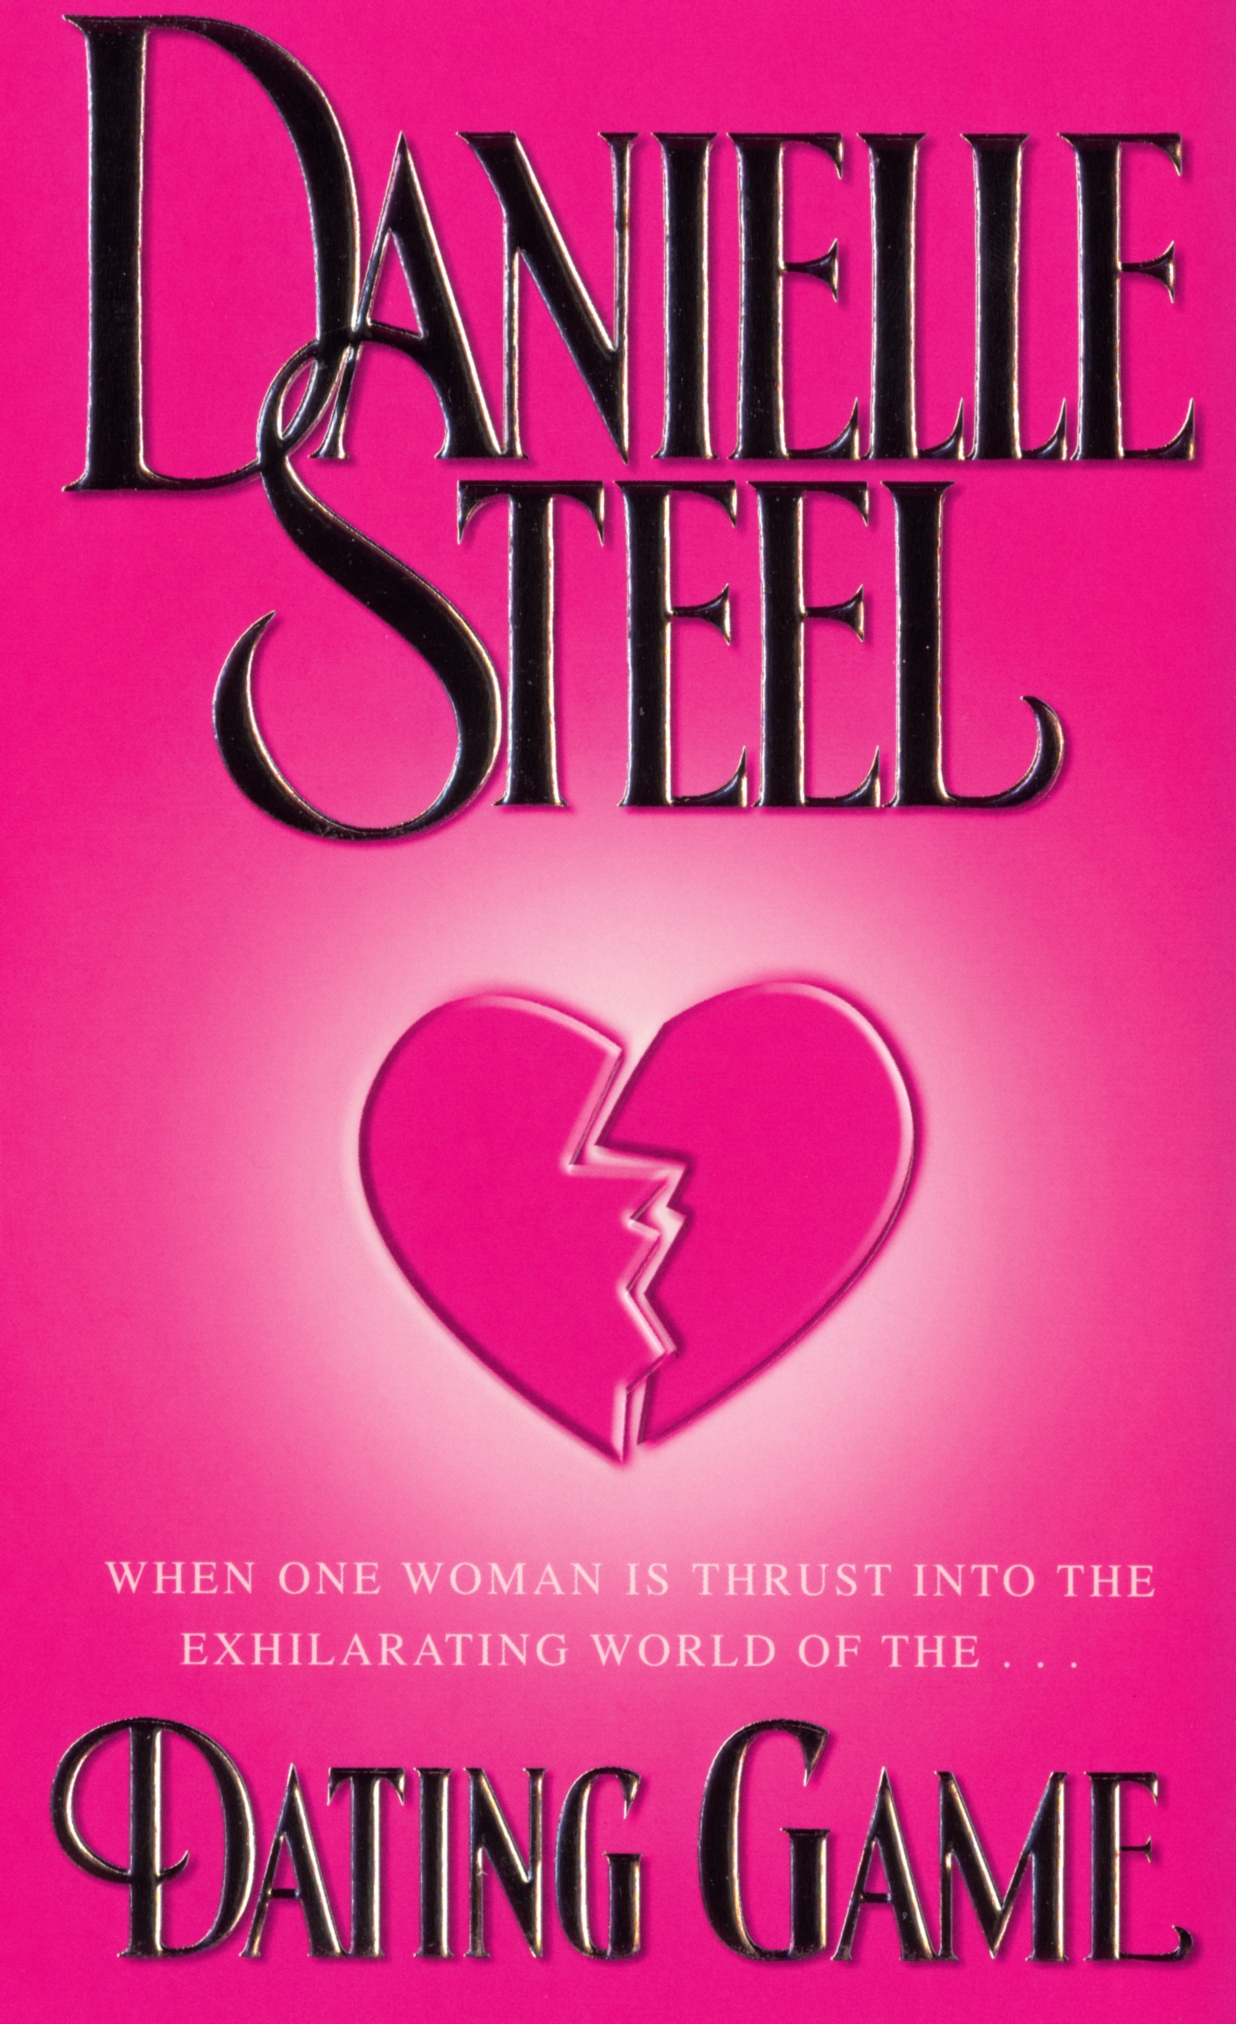 the dating game danielle steel Dating game: a novel [danielle steel] on amazoncom free shipping on qualifying offers in her 57th bestselling novel, danielle steel brilliantly chronicles the roller-coaster ride of dating the second time around—and tells a captivating story of the surprises one woman encounters when she's thrust into the terrifying.